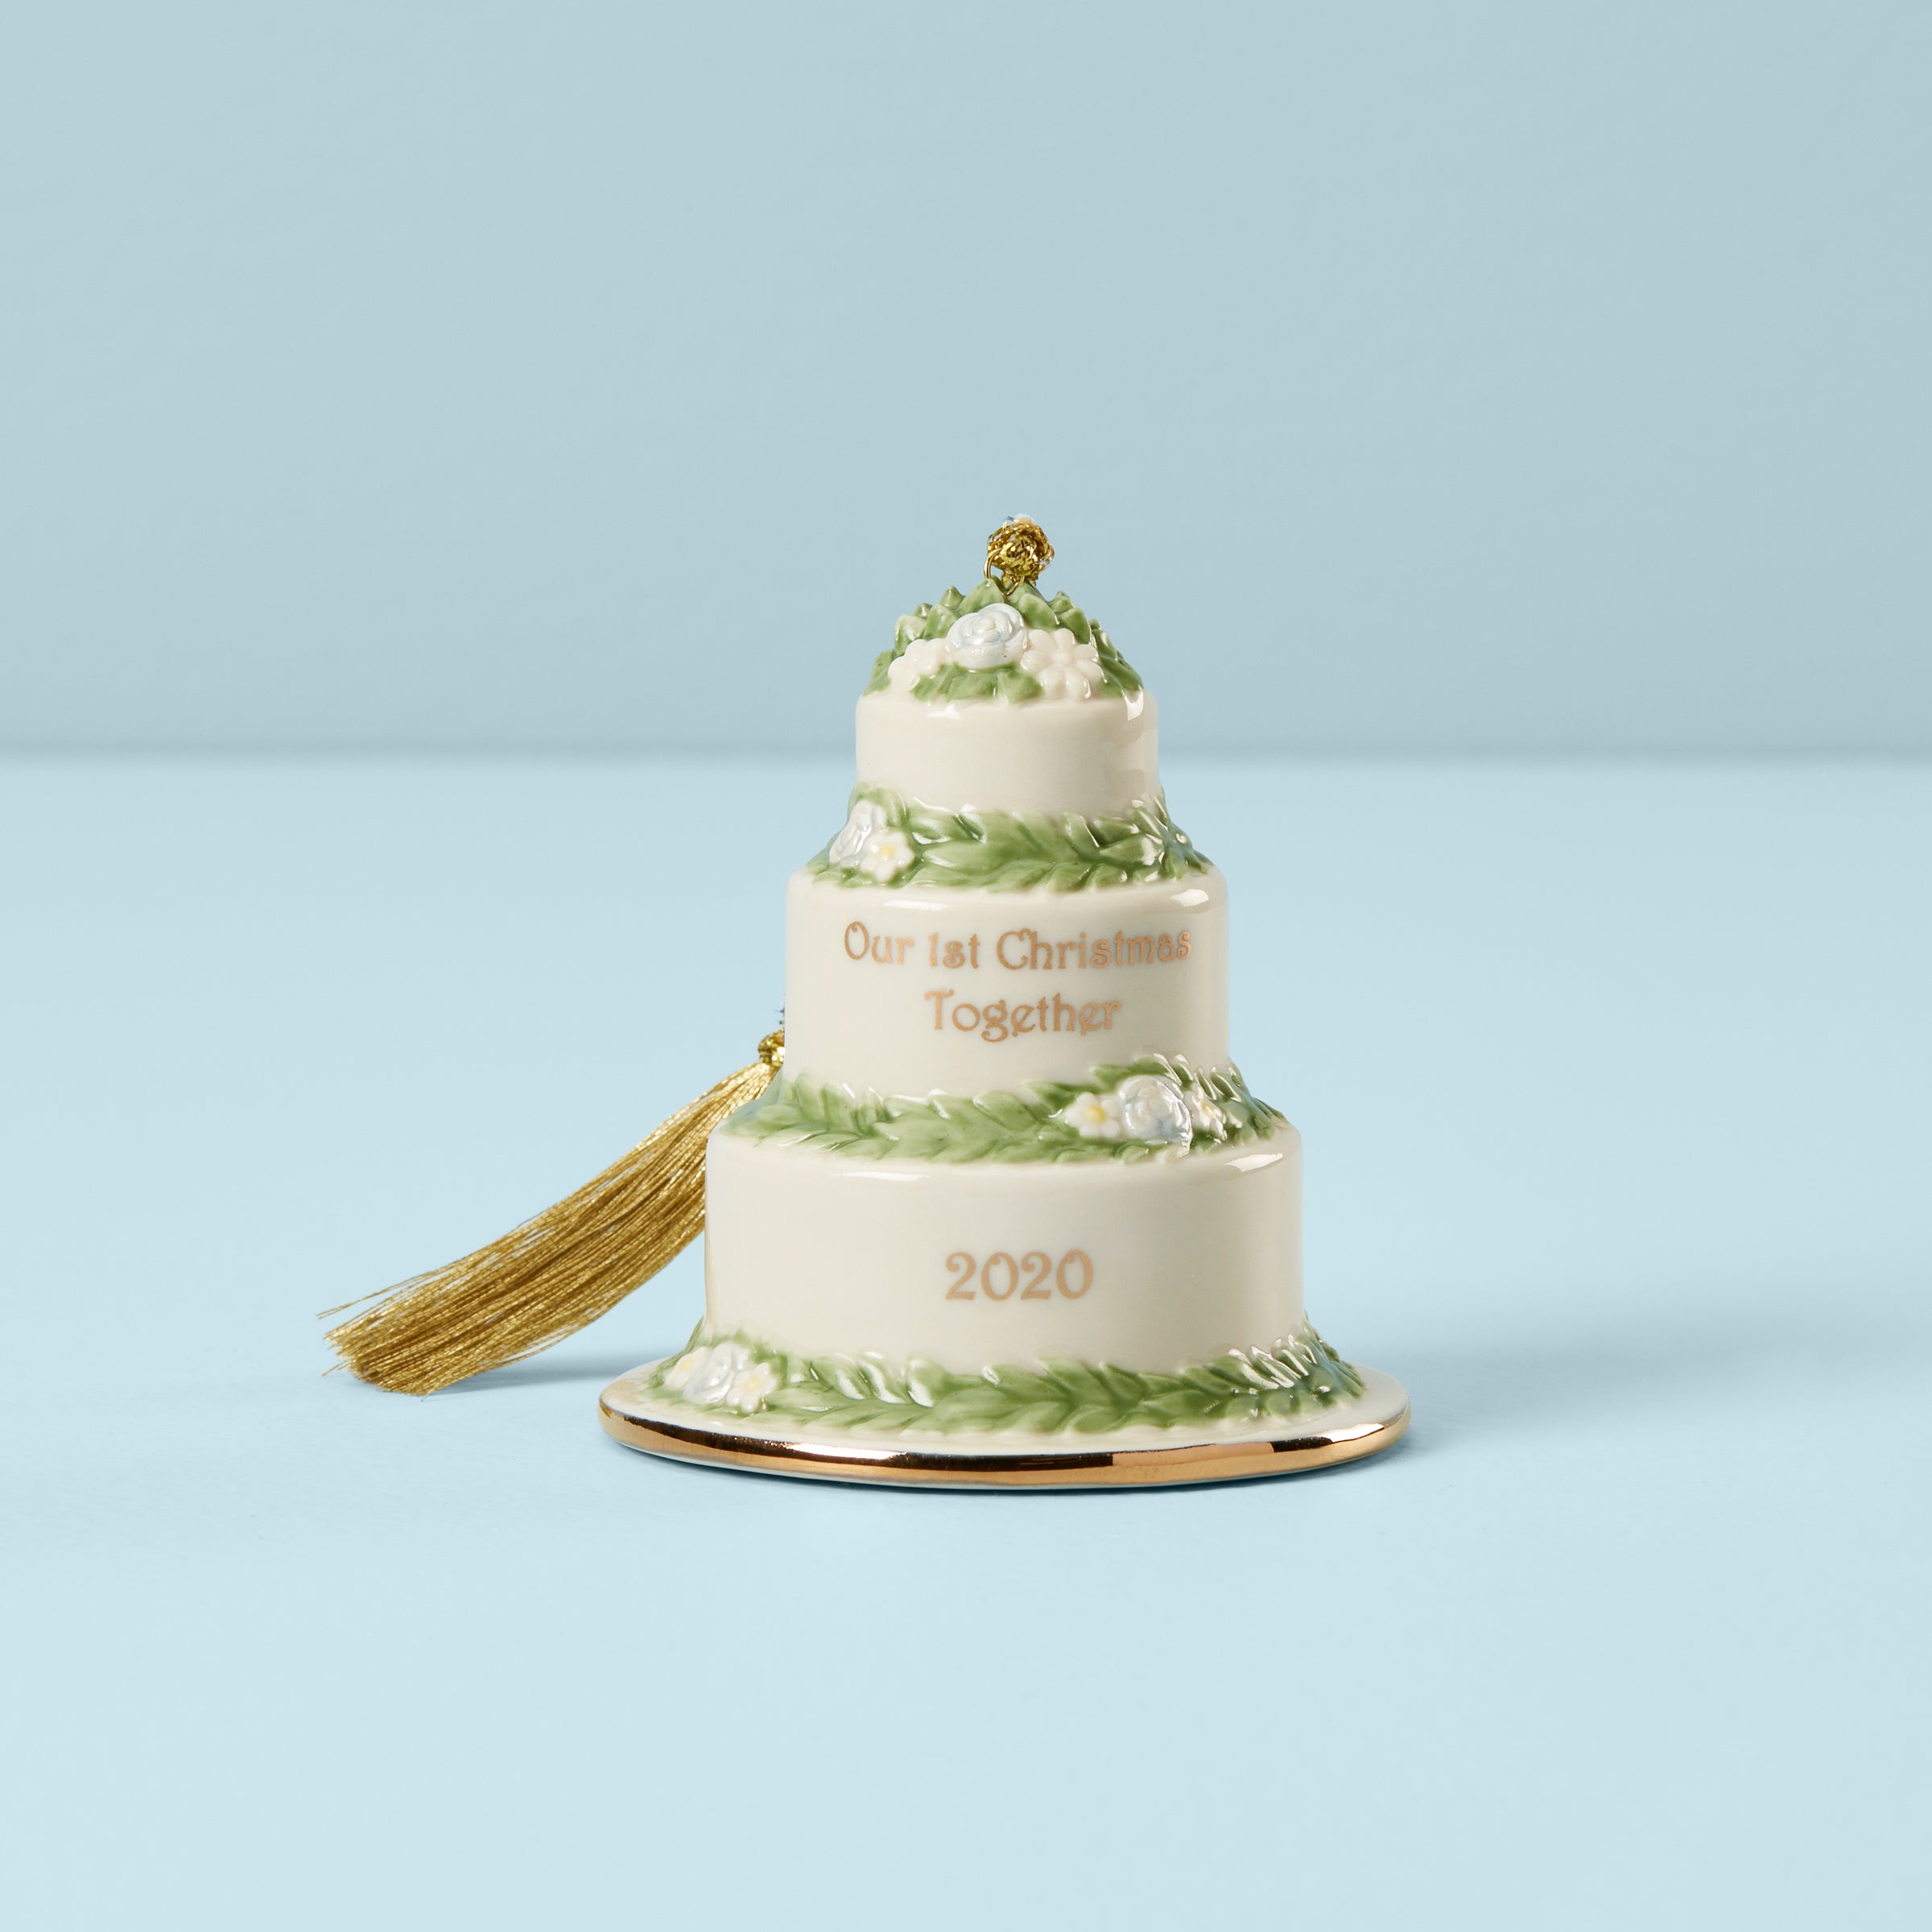 Wedding Cake Christmas Ornaments 2020 2020 Our First Christmas Together Cake Ornament – Lenox Corporation